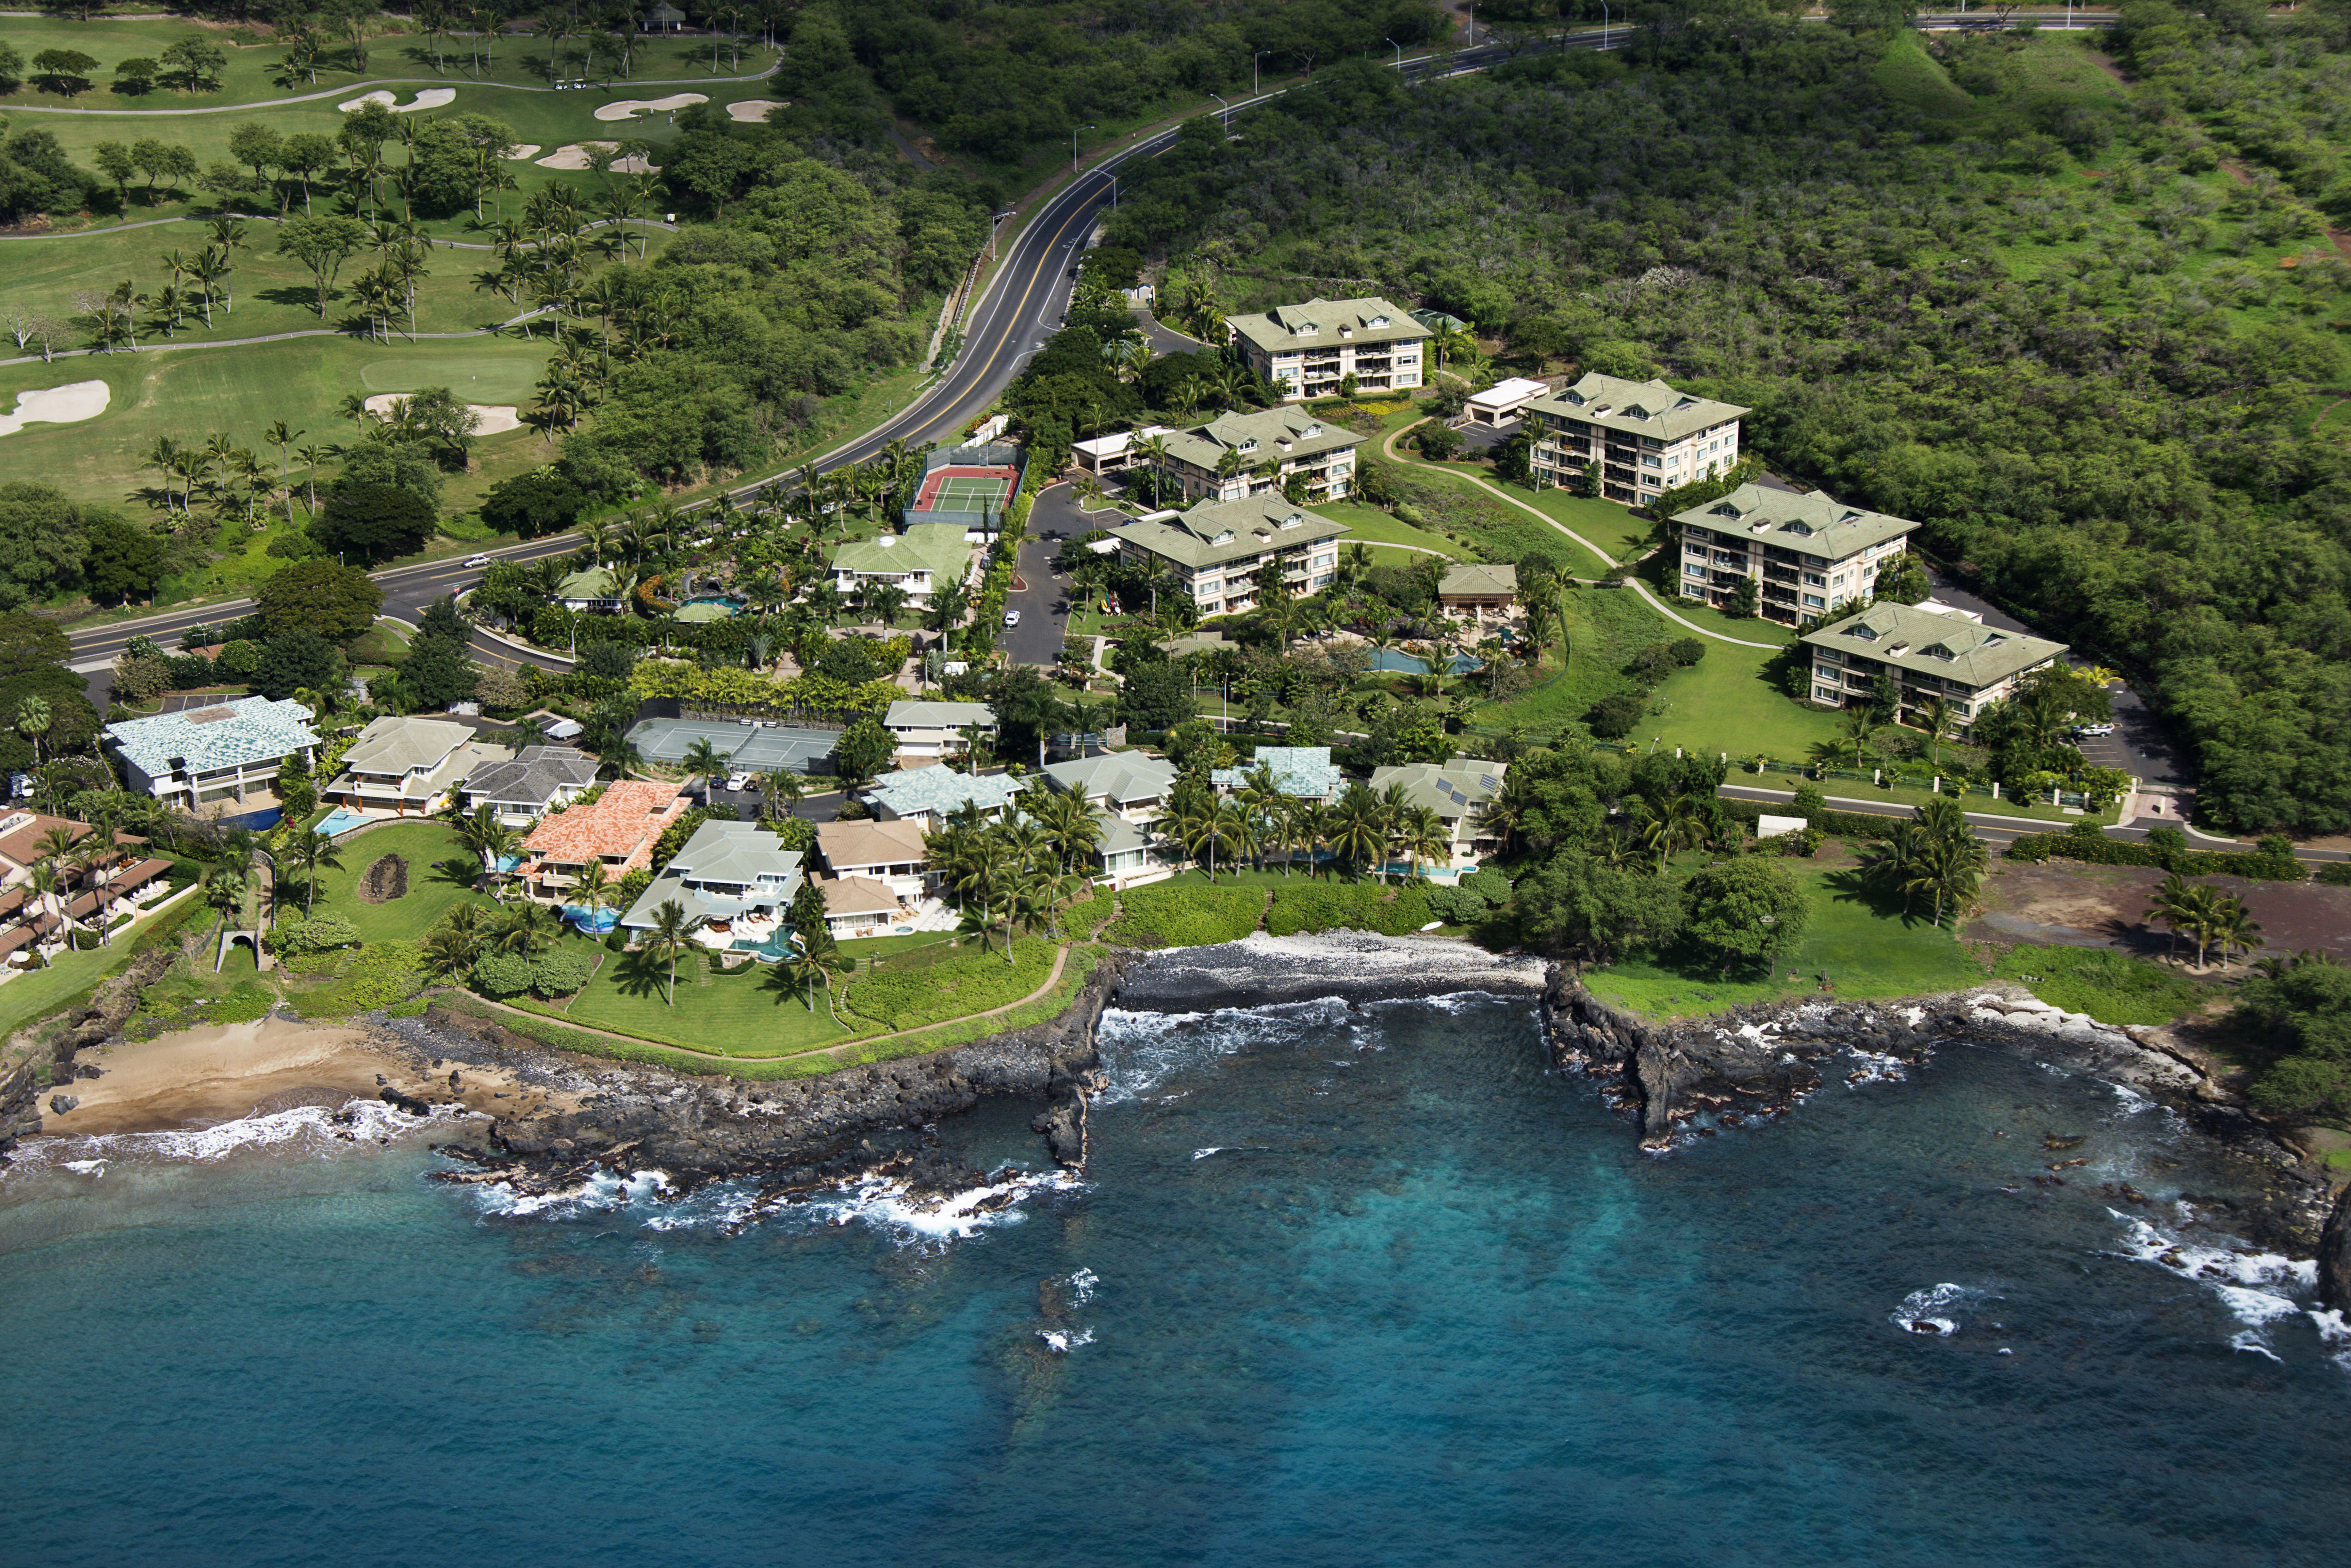 Aerial of houses clustered by Maui, Hawaii coast.